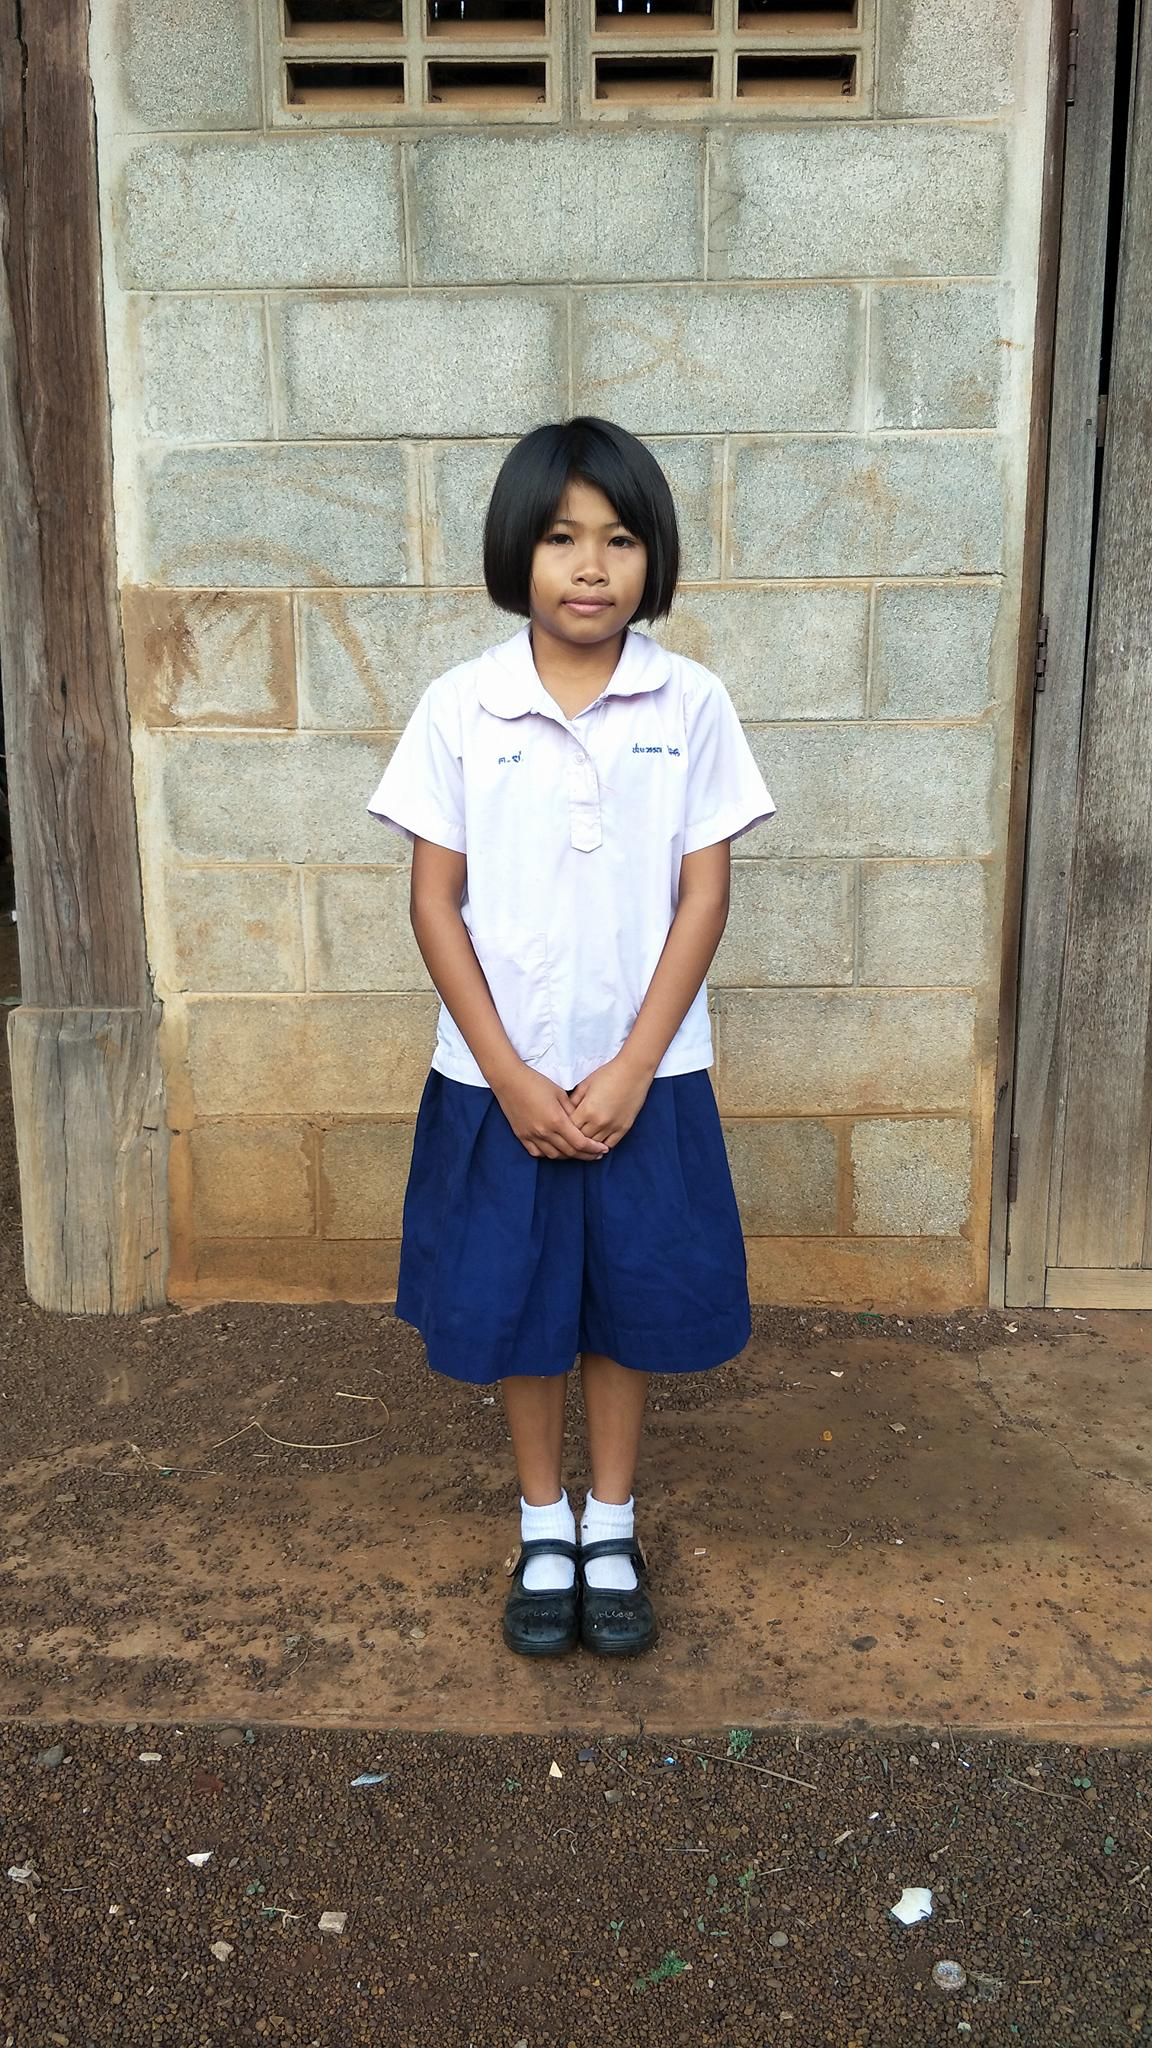 Chanawan (8 years old, Girl)